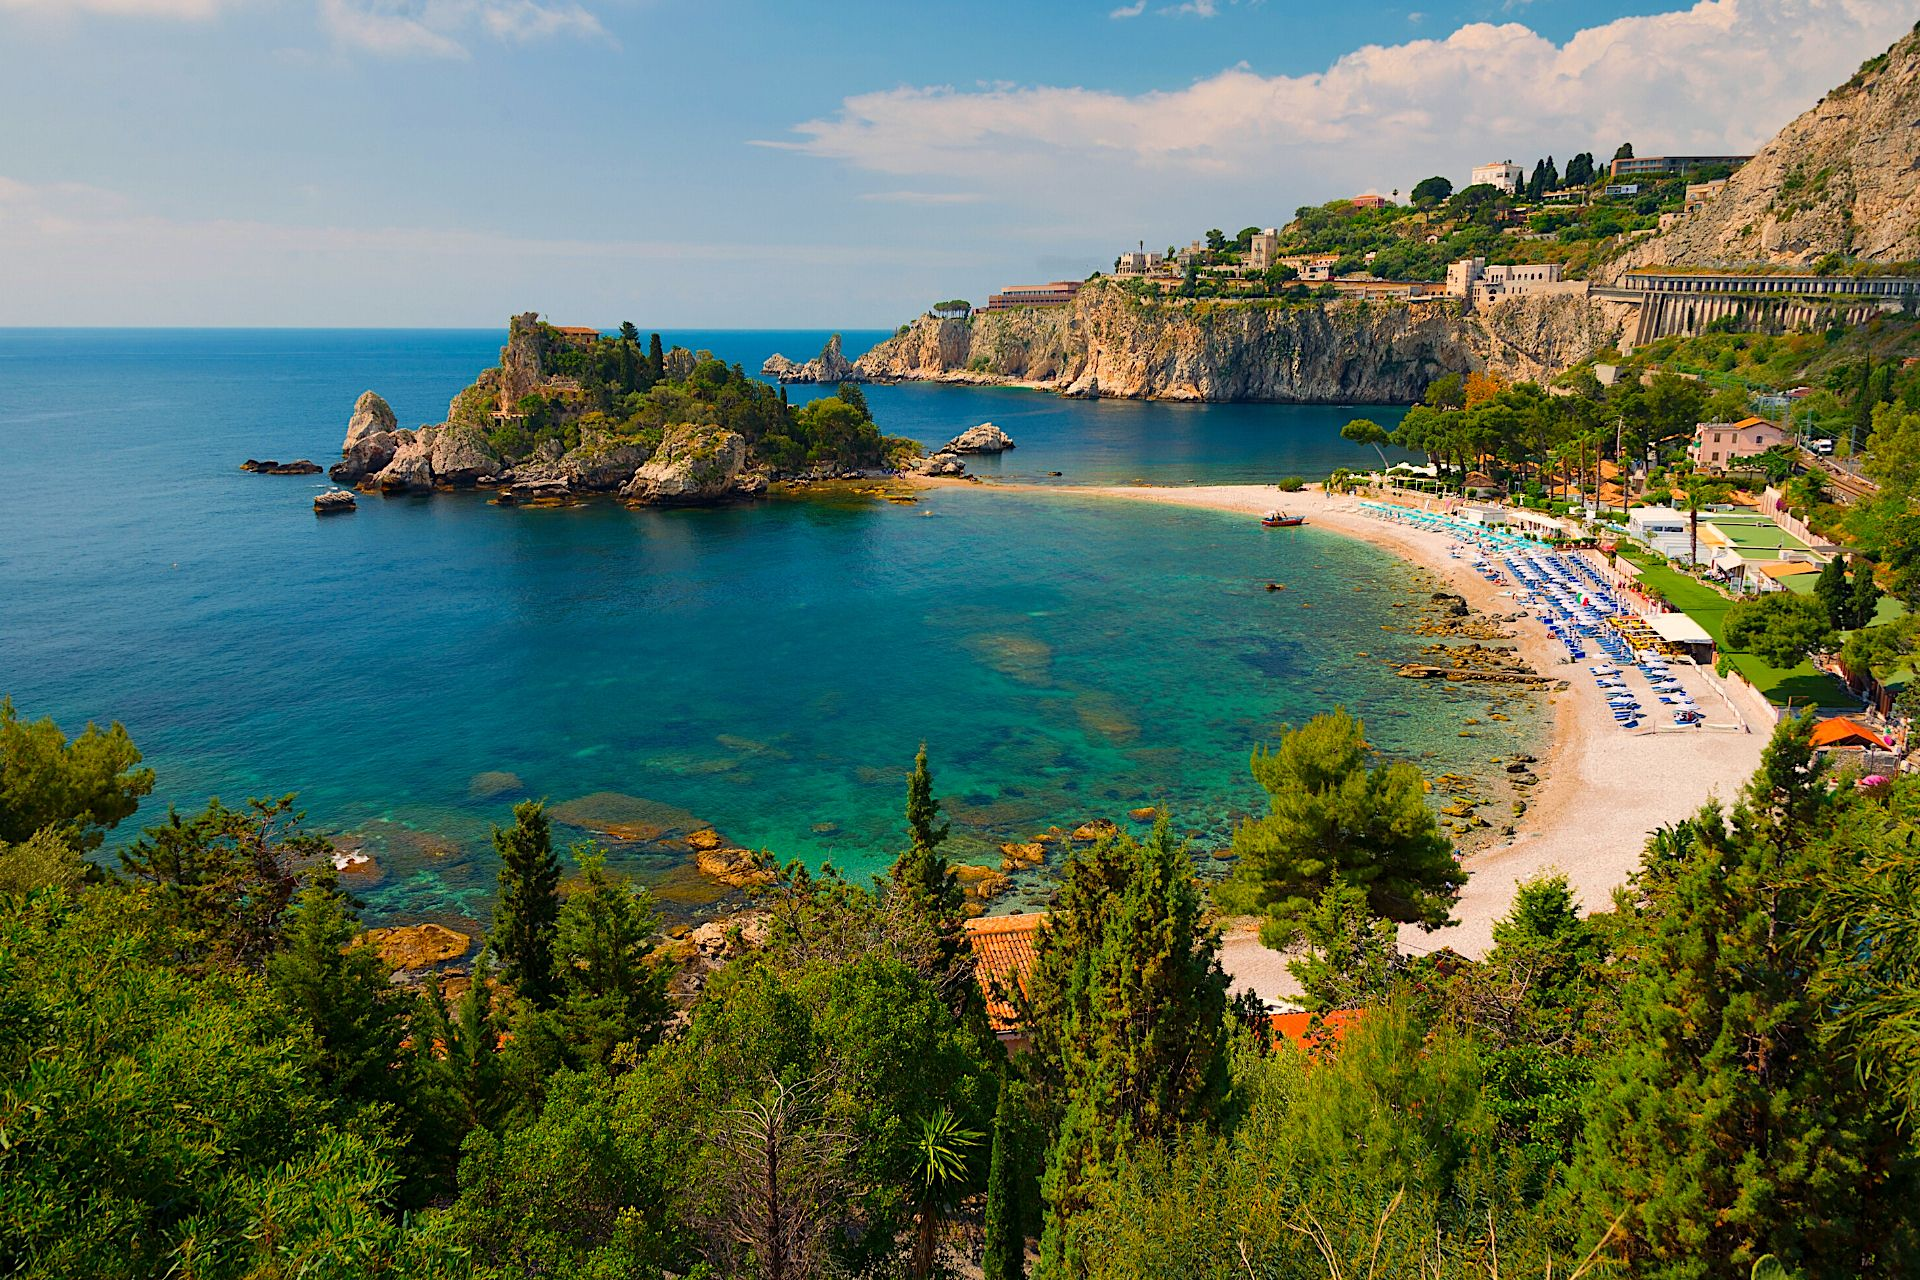 What to do in Taormina, beaches, day trips and more in